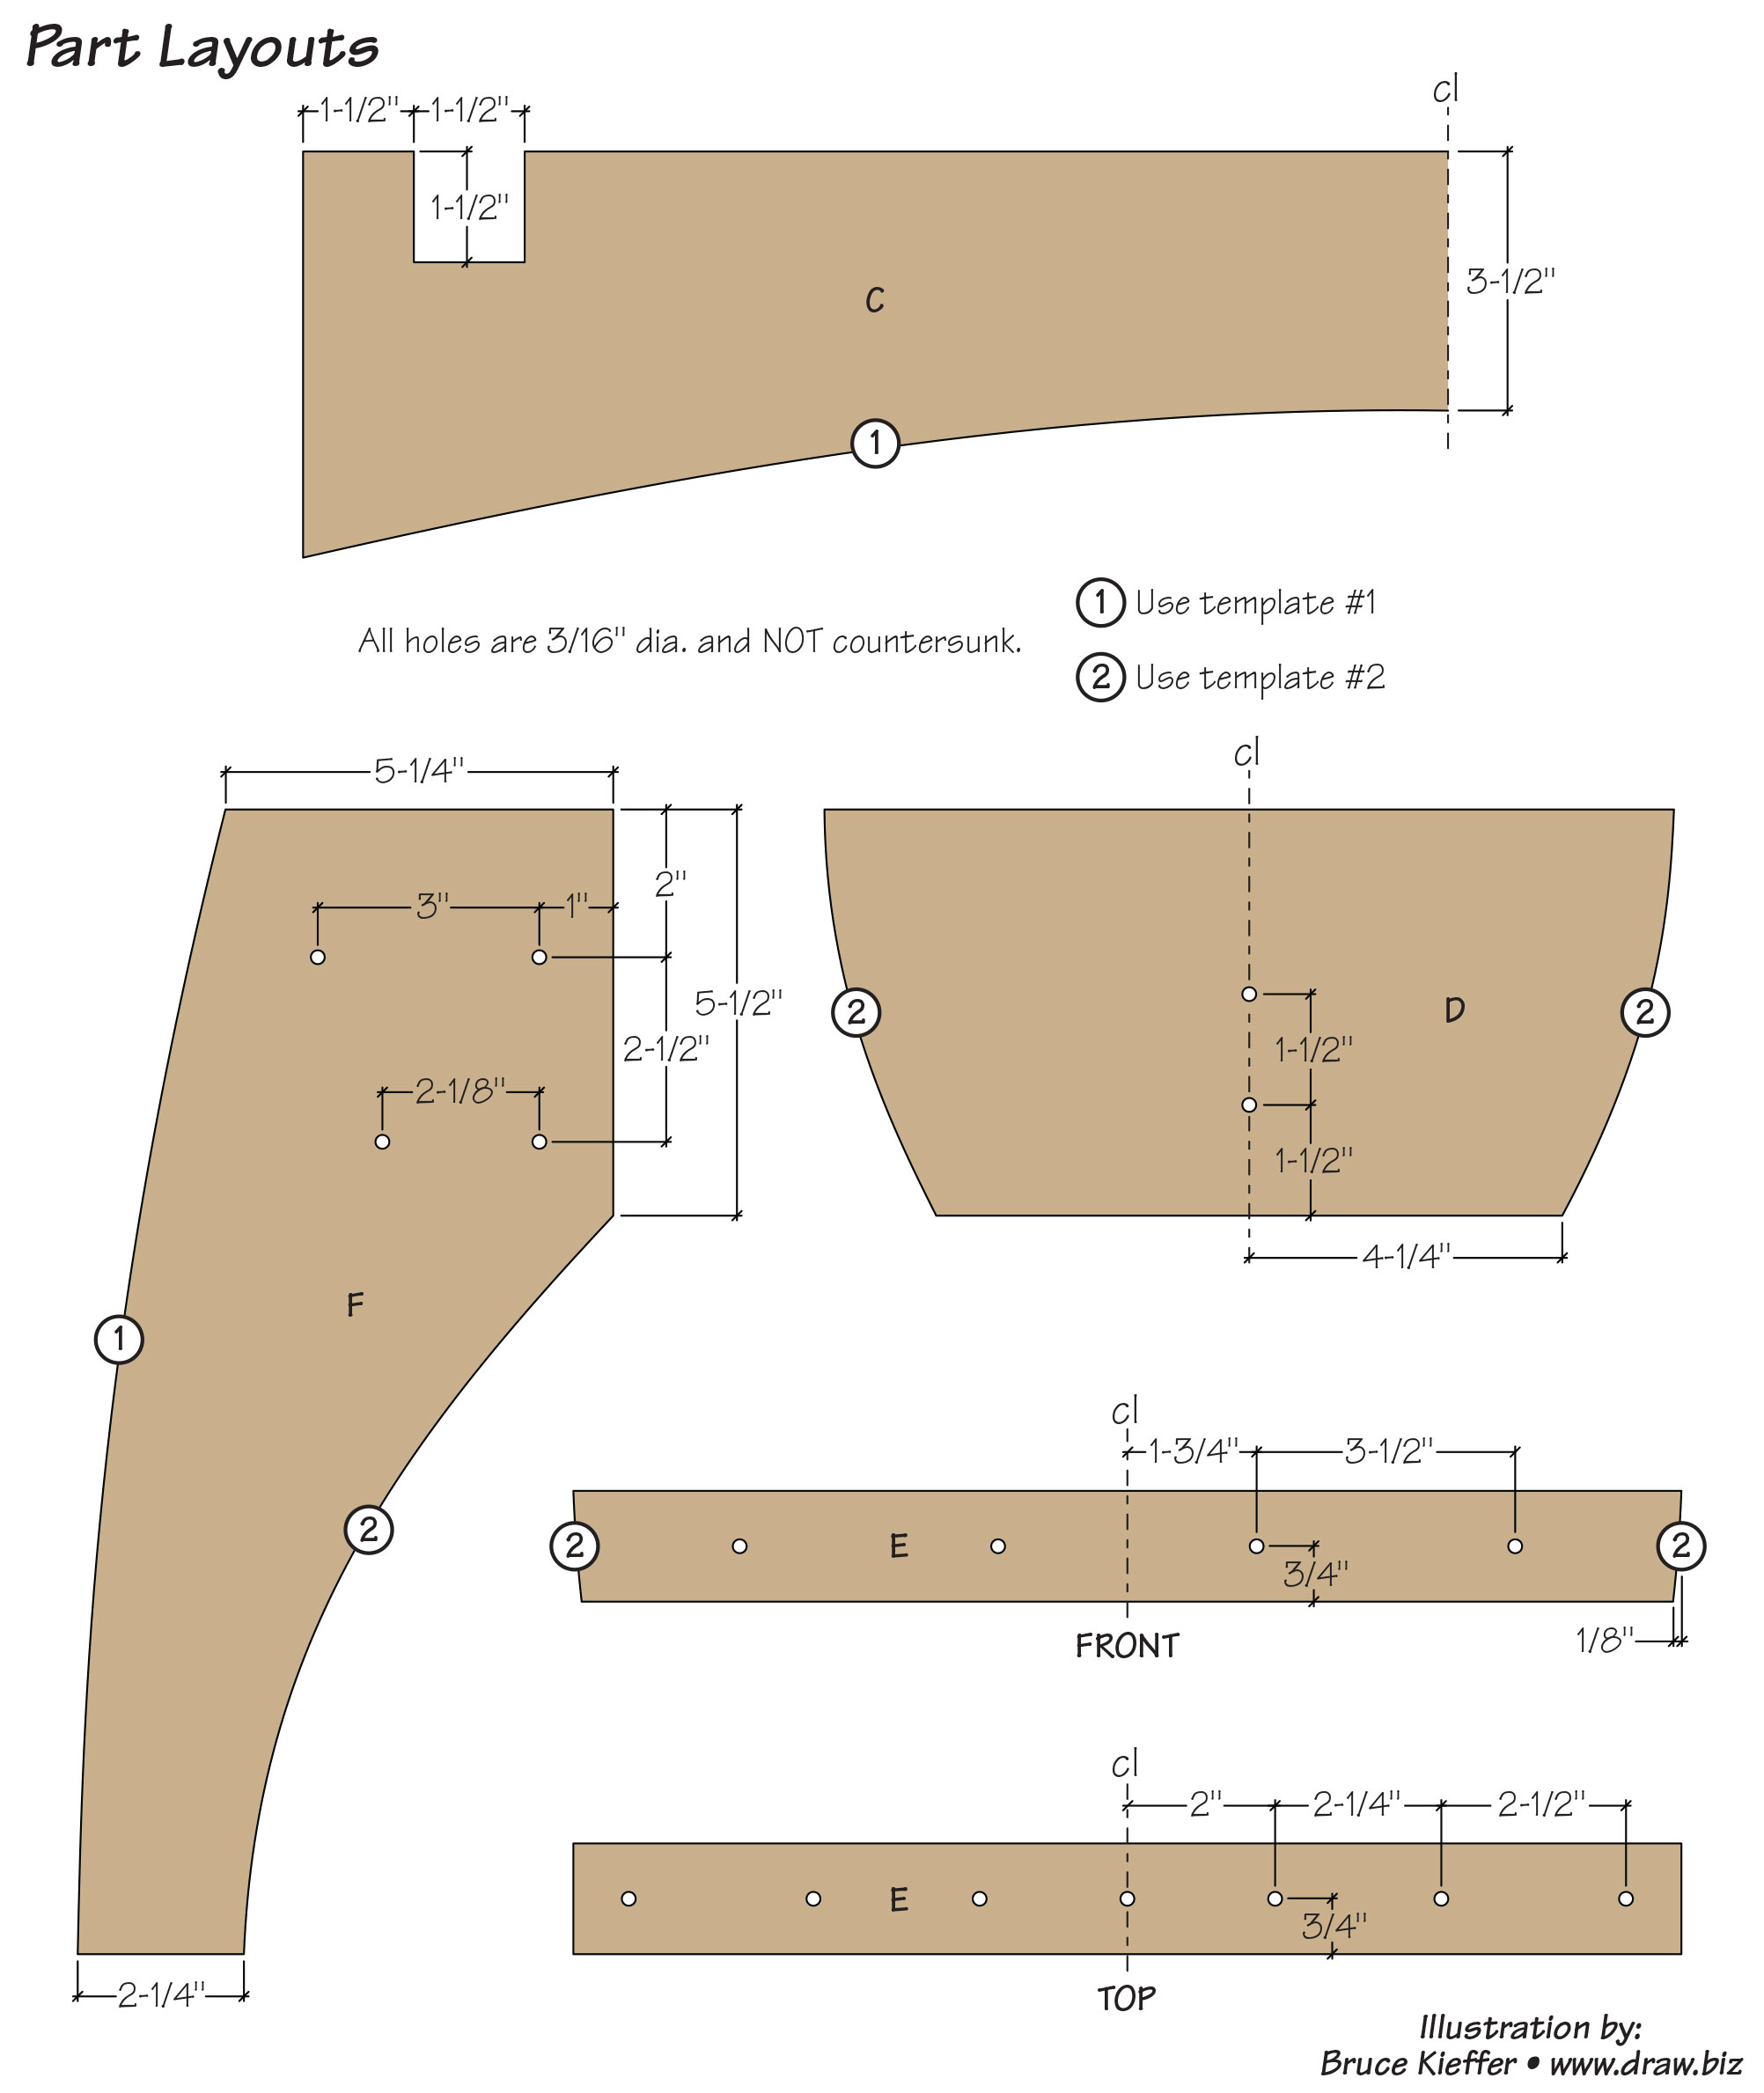 Outdoor bench plans outdoor bench plans step 4 part layouts pooptronica